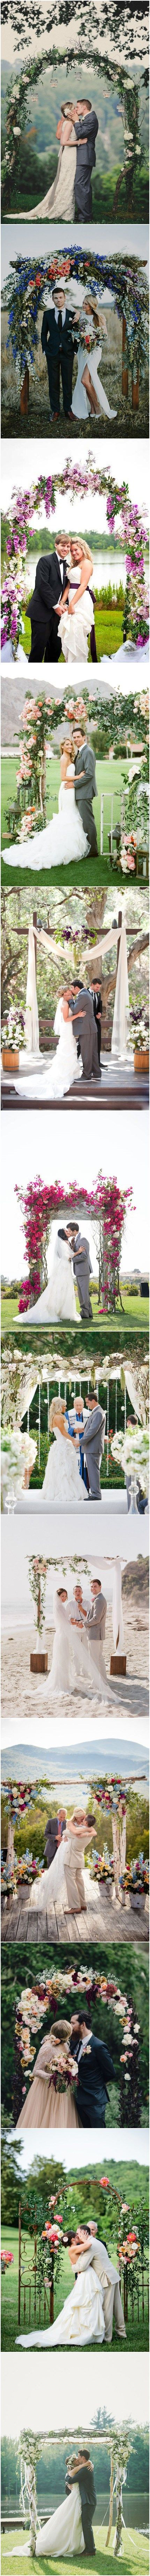 Great ideas for Outside Rustic Weddings  26 Floral Wedding  Decorating Arche Ideas http://www.deerpearlflowers.com/26-floral-wedding-arches-decorating-ideas/